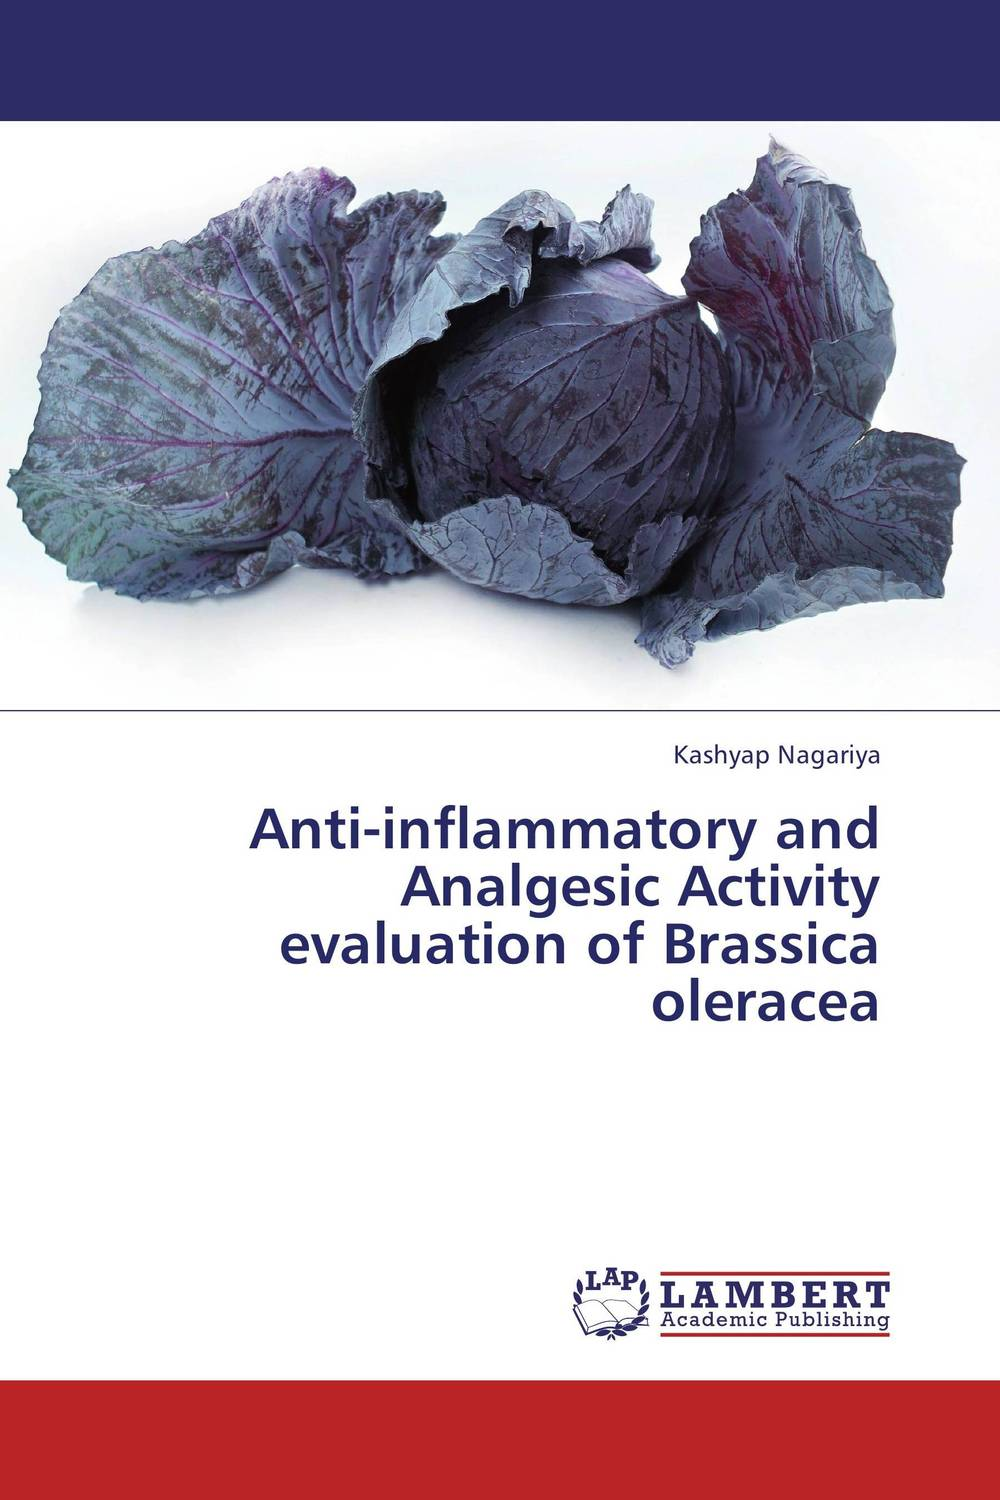 Anti-inflammatory and Analgesic Activity evaluation of Brassica oleracea arumugam madeswaran computational studies of anti inflammatory activity of some flavonoids